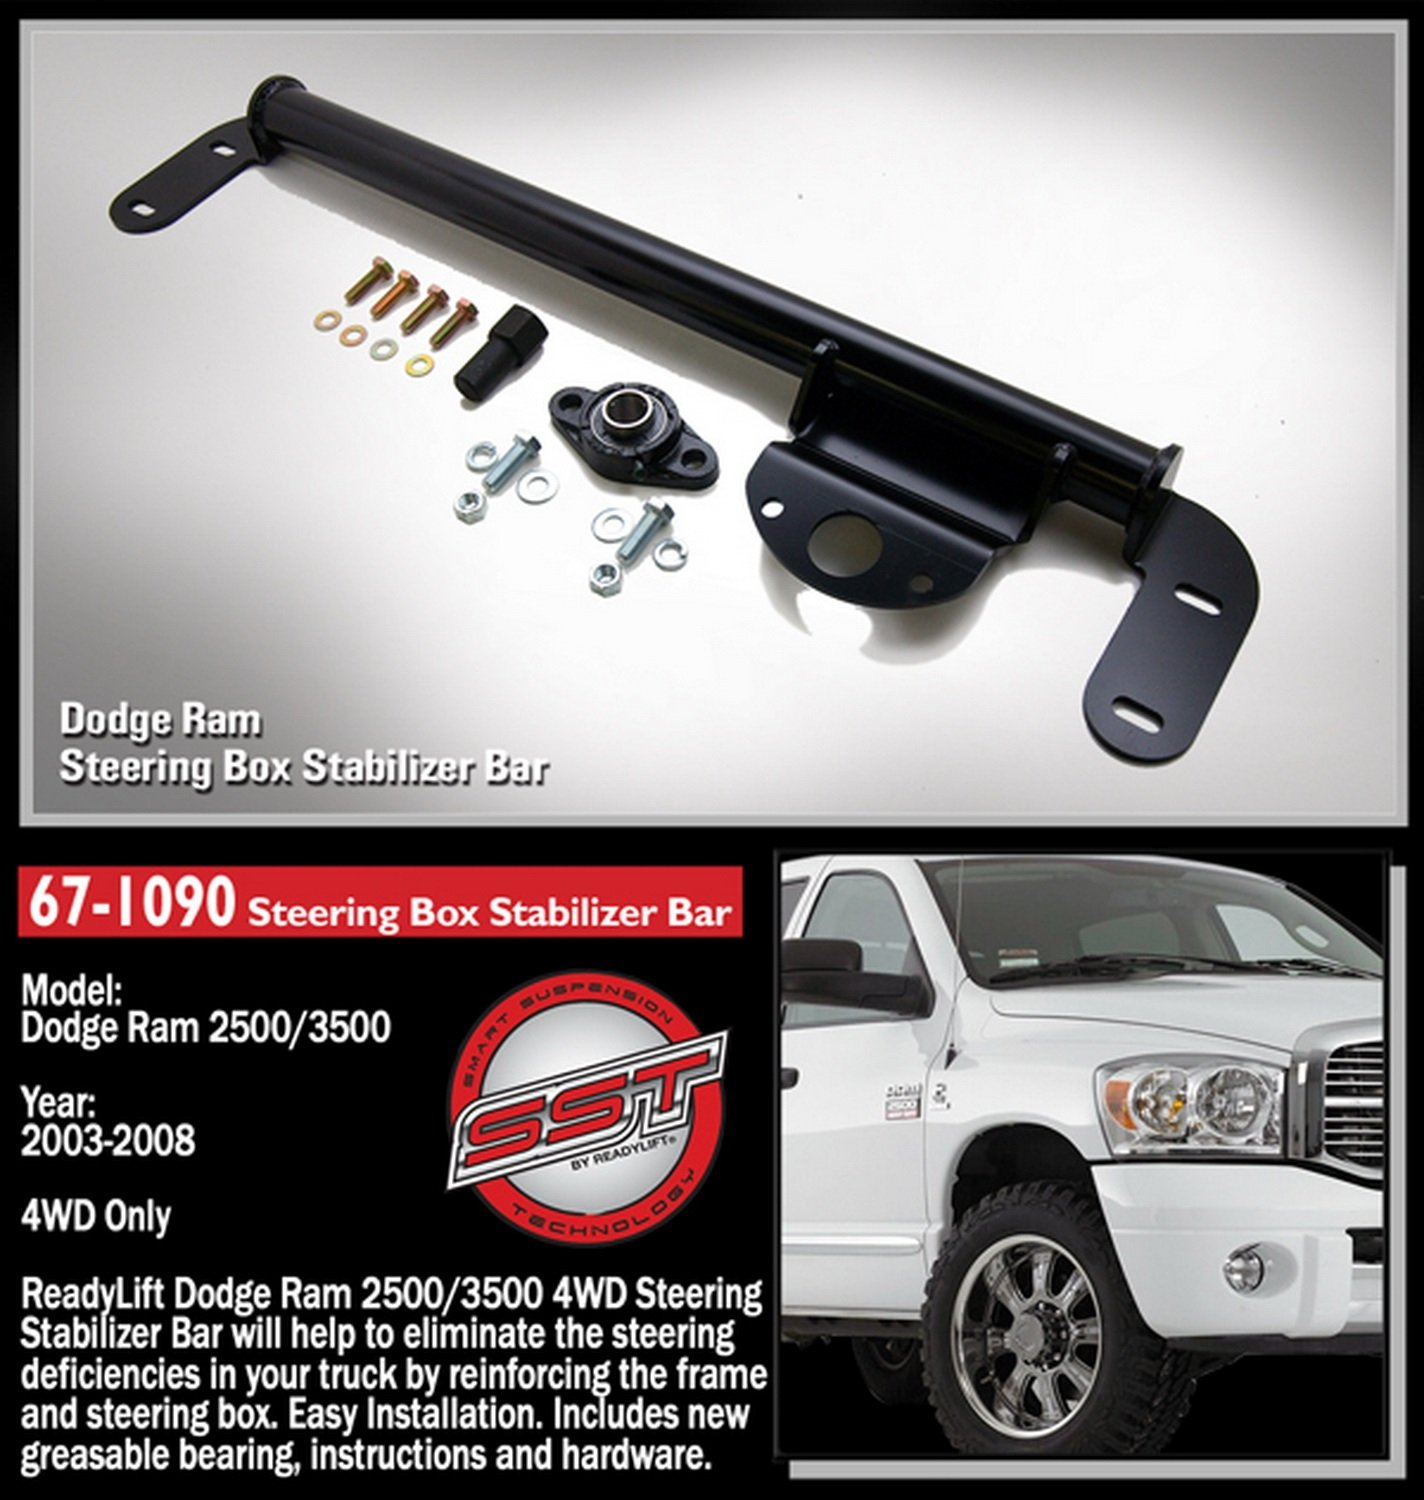 ReadyLift 67-1090 Steering Box Stabilizer Bar for Dodge Ram 2500/3500, 2003-2008